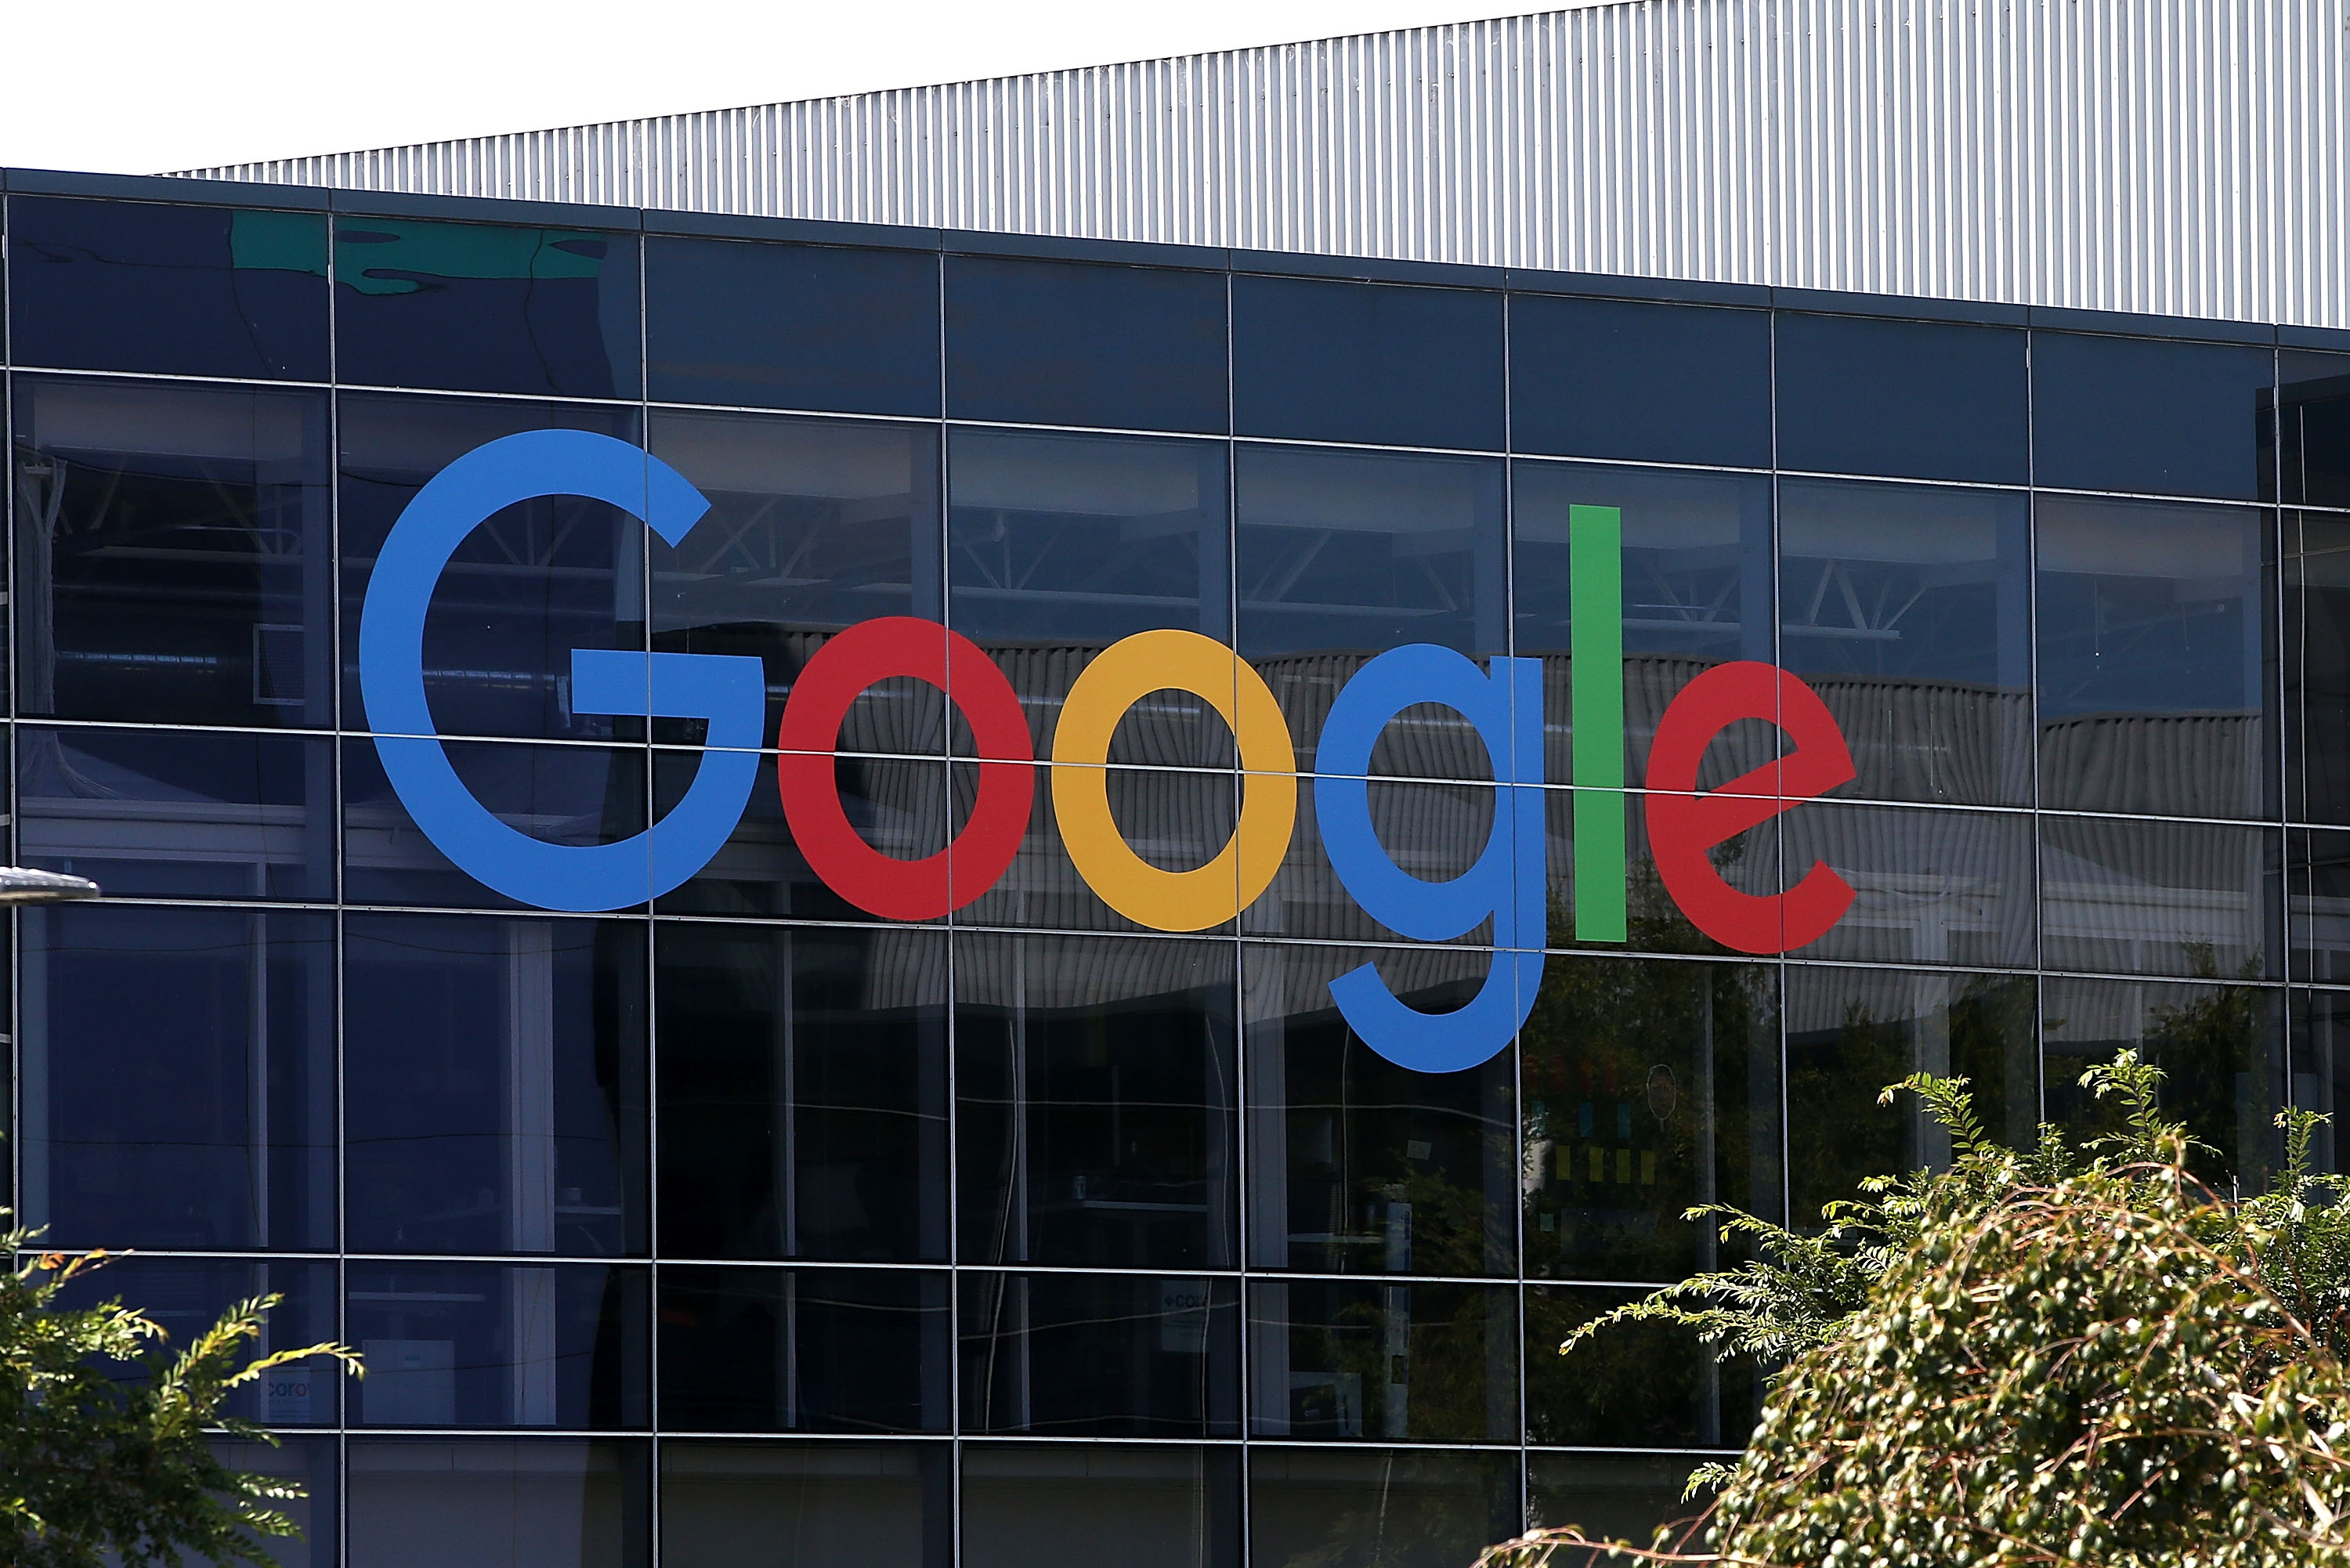 The Google logo is displayed at the Google headquarters on Sept. 2, 2015 in Mountain View, Calif.